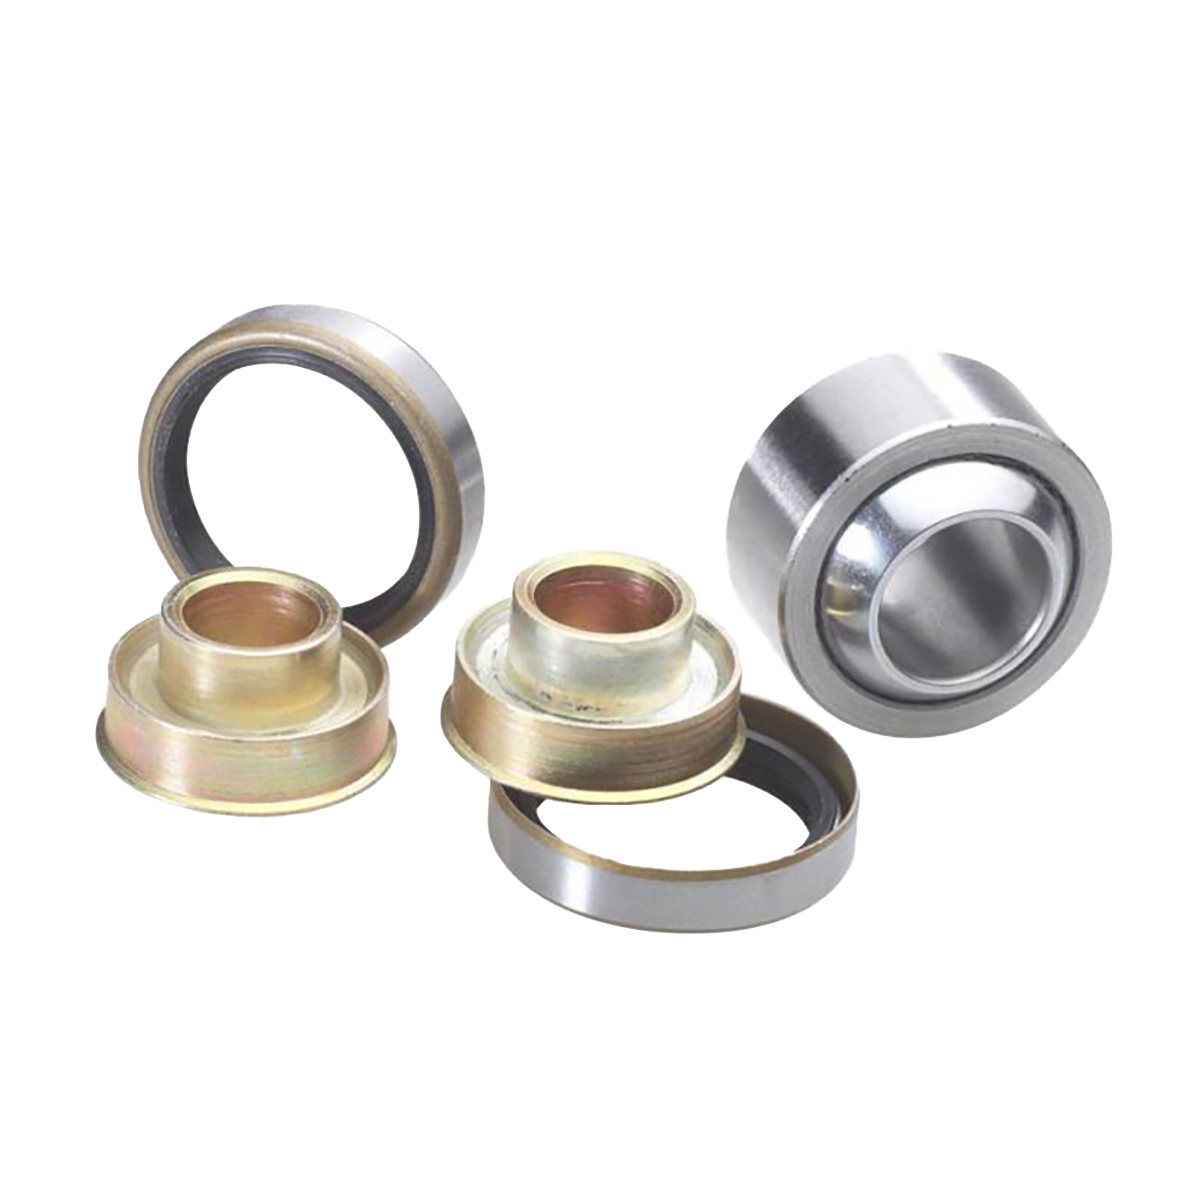 KTM MXC 250 2000-2001 Front Wheel Bearings And Seals